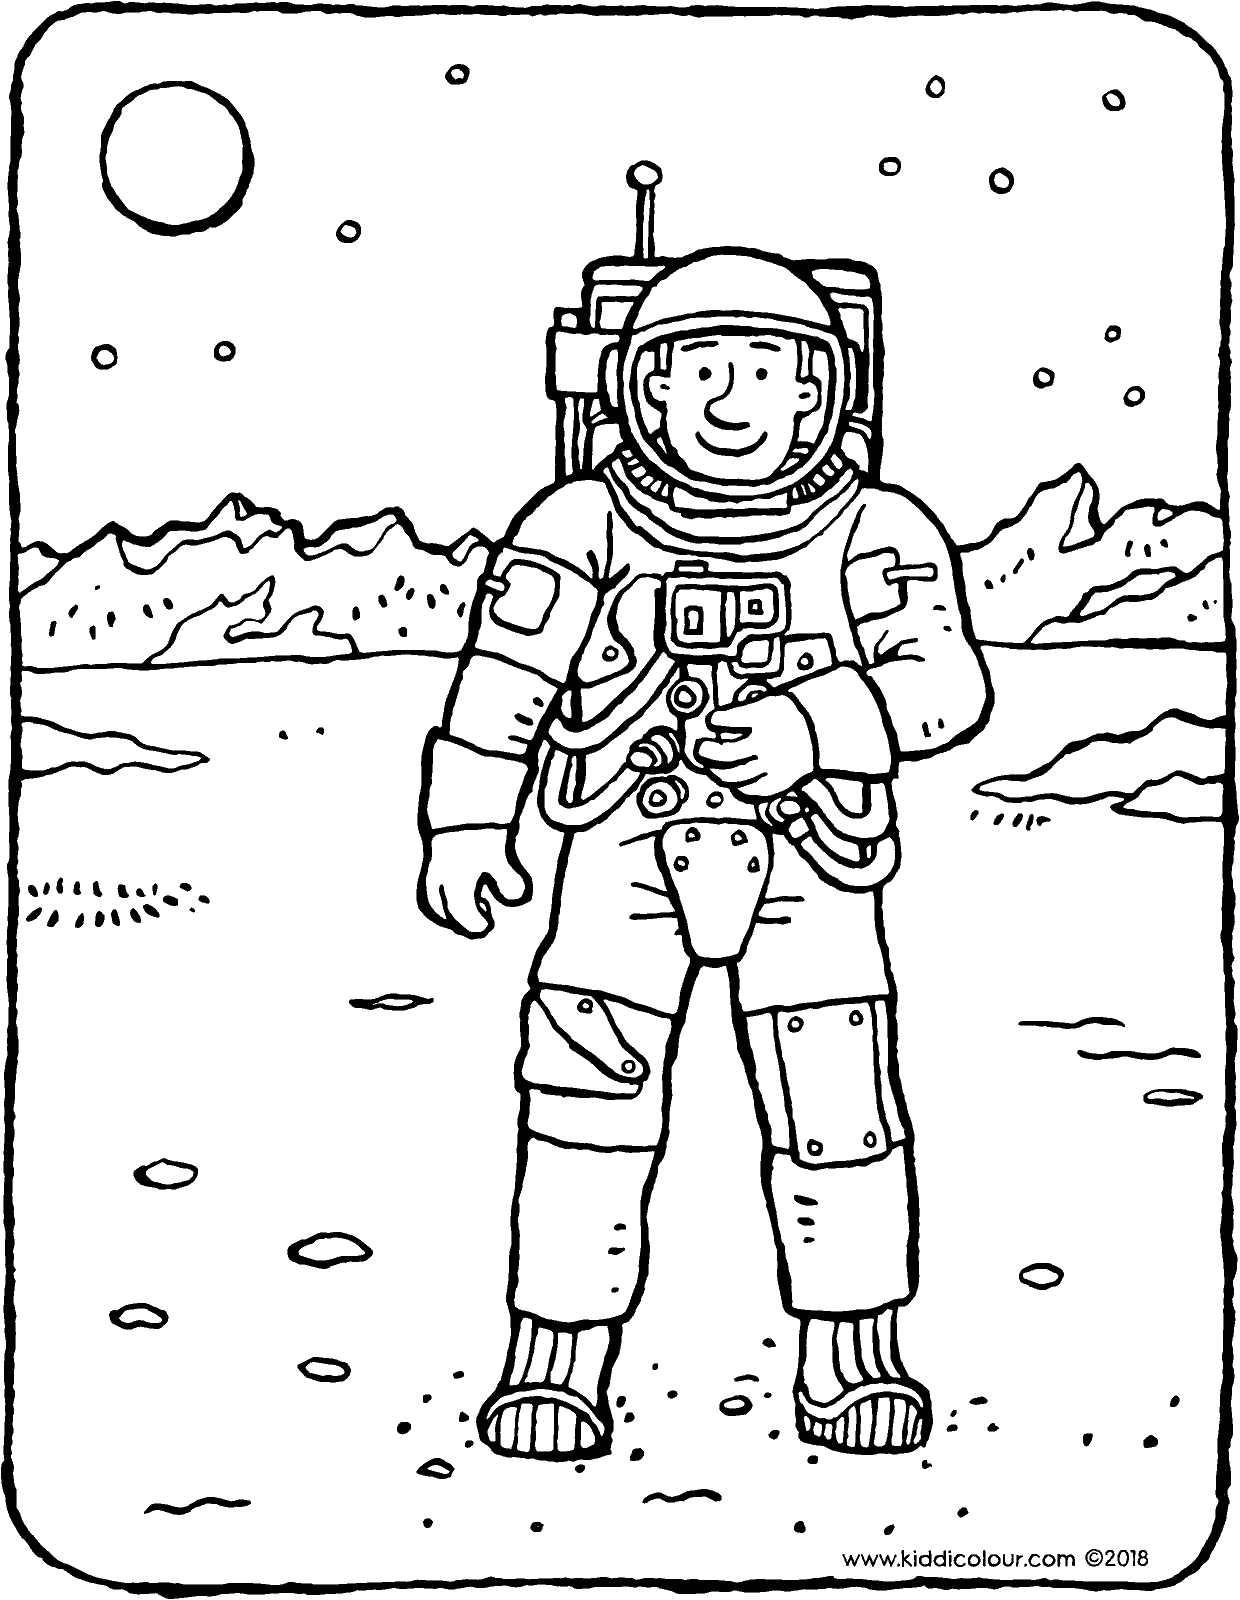 astronaut colouring page drawing picture 01V